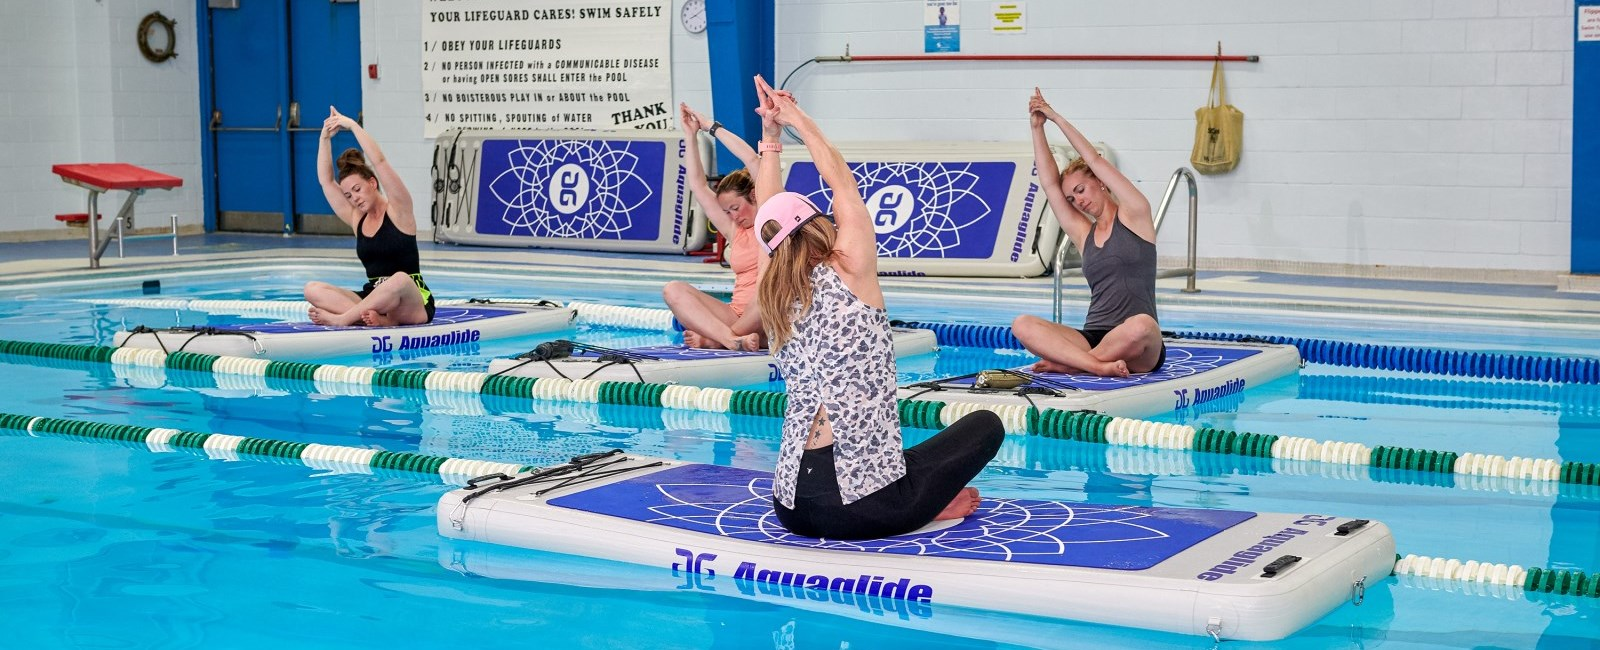 People sitting on floating boards in the pool doing yoga